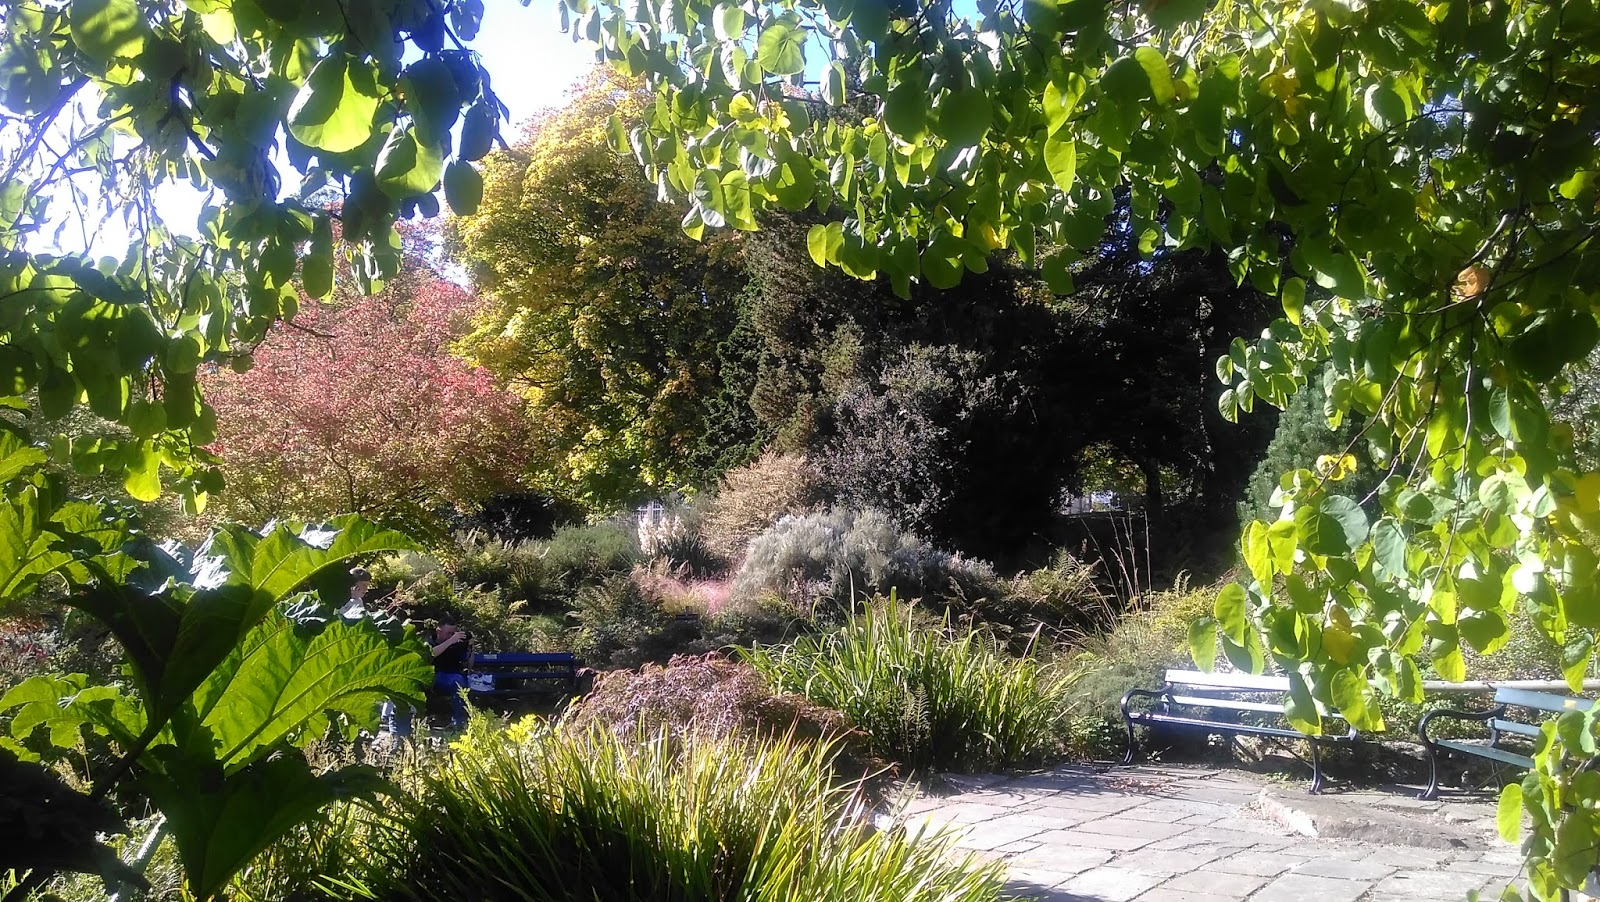 gwenfar s garden and other musings photo essay sheffield photo essay sheffield botanical gardens in autumn 2015